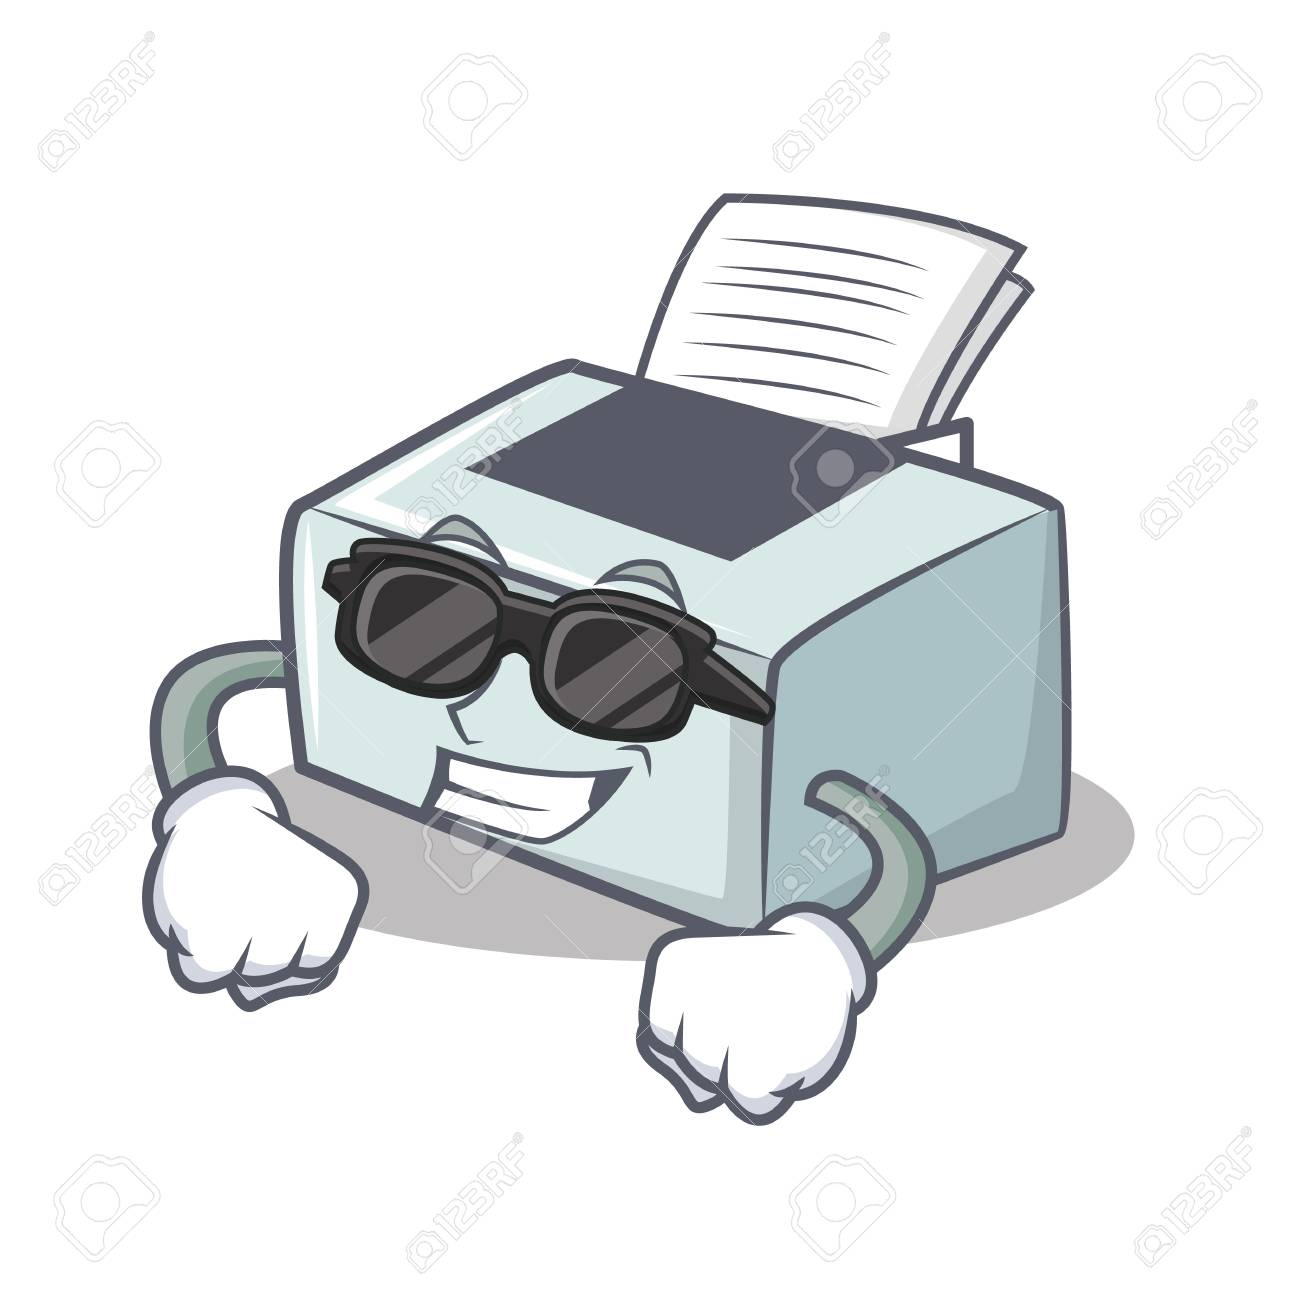 Super Cool Printer Character Cartoon Style Illustration Royalty Free Cliparts Vectors And Stock Illustration Image 93072005